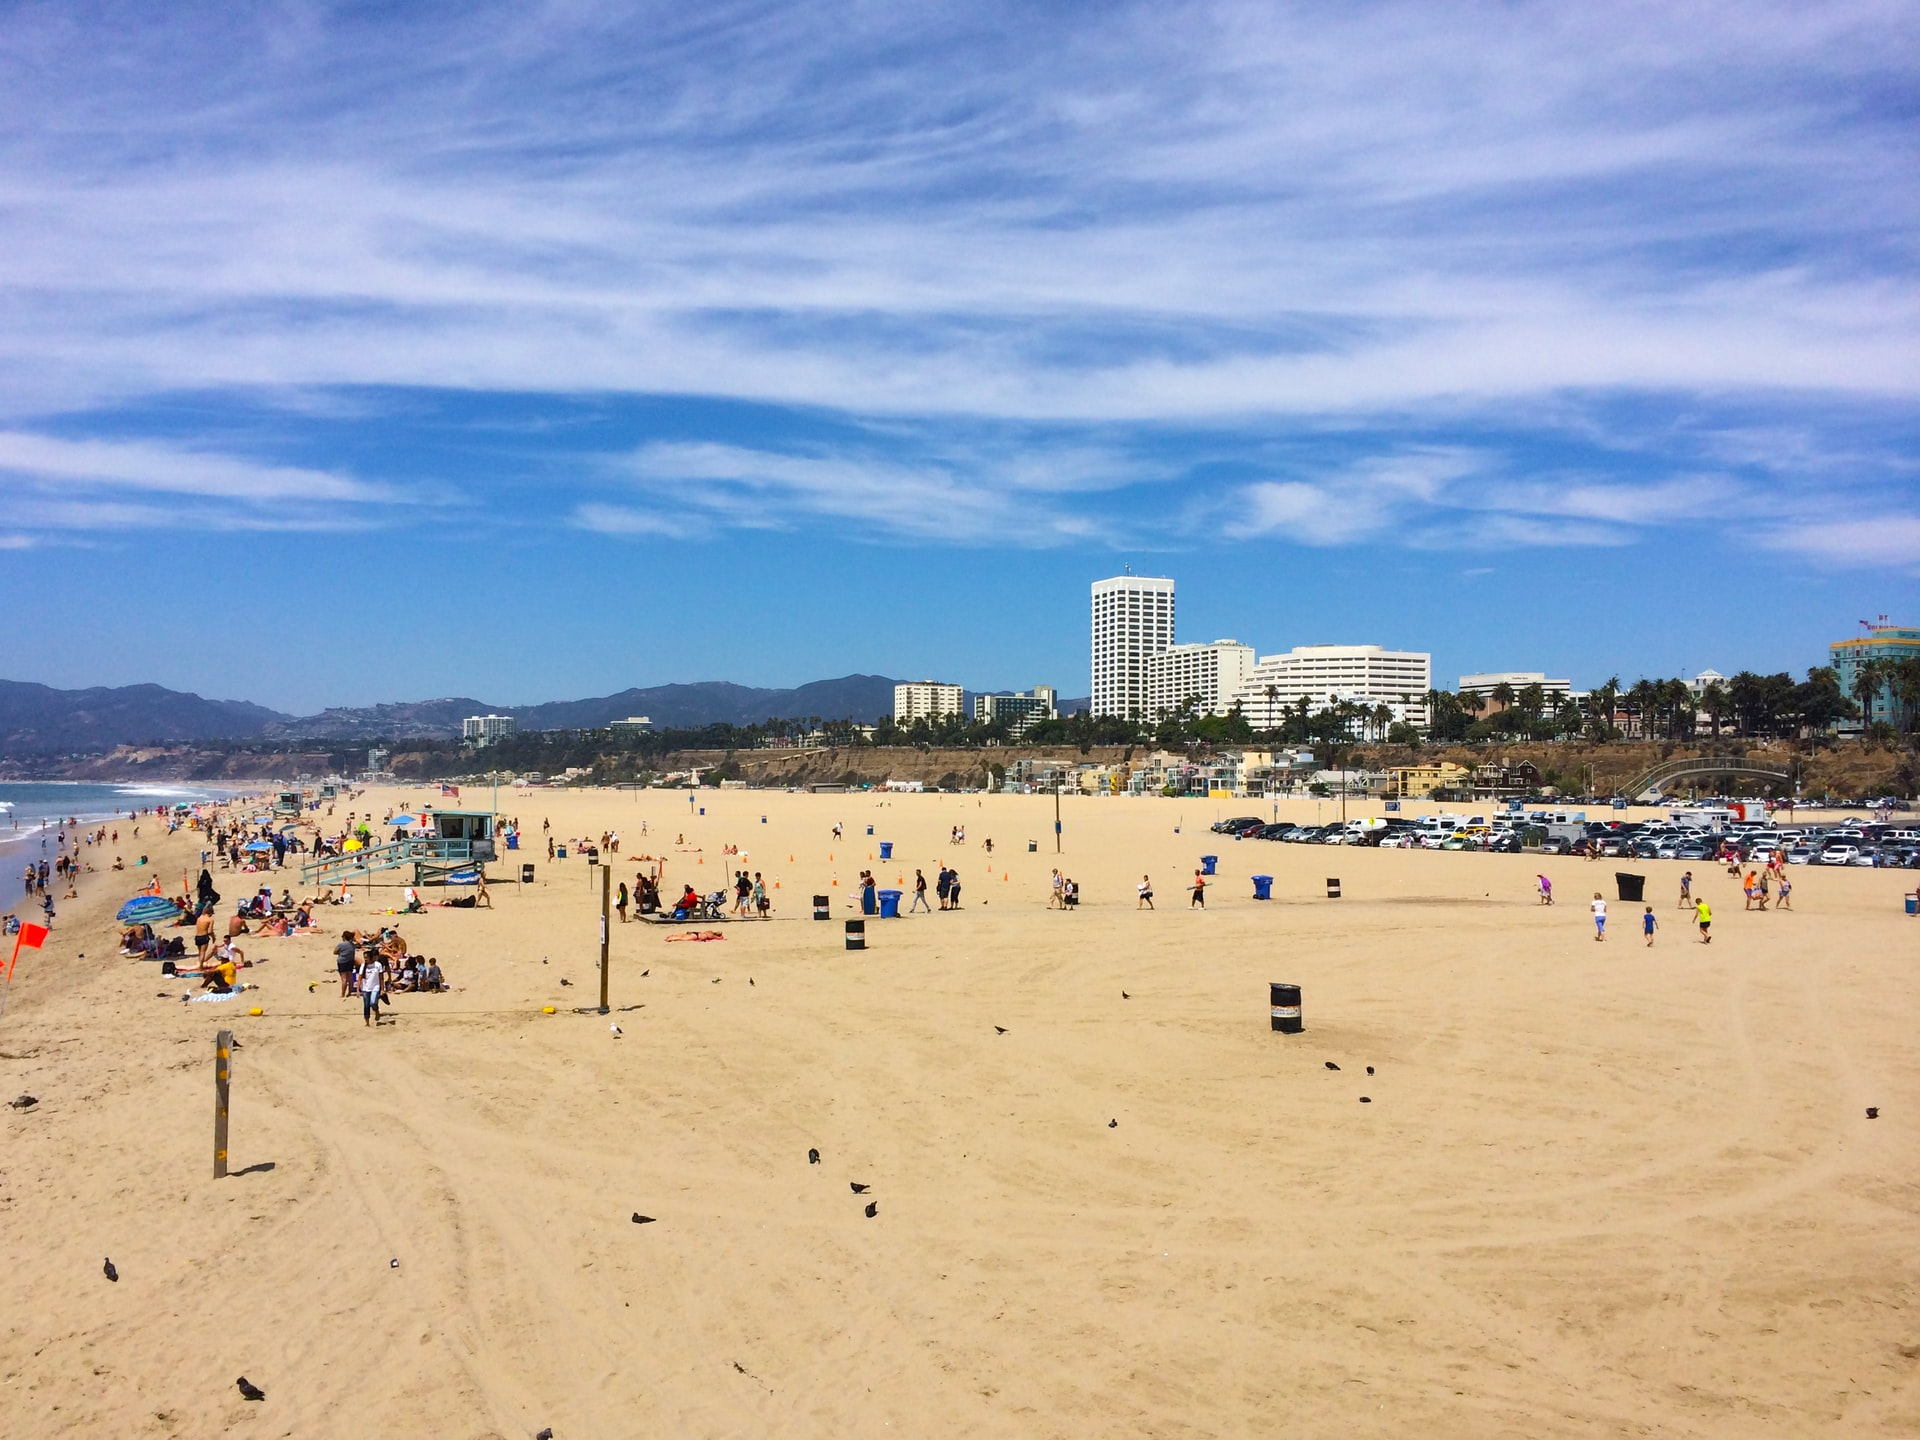 Plage gay de Los Angeles